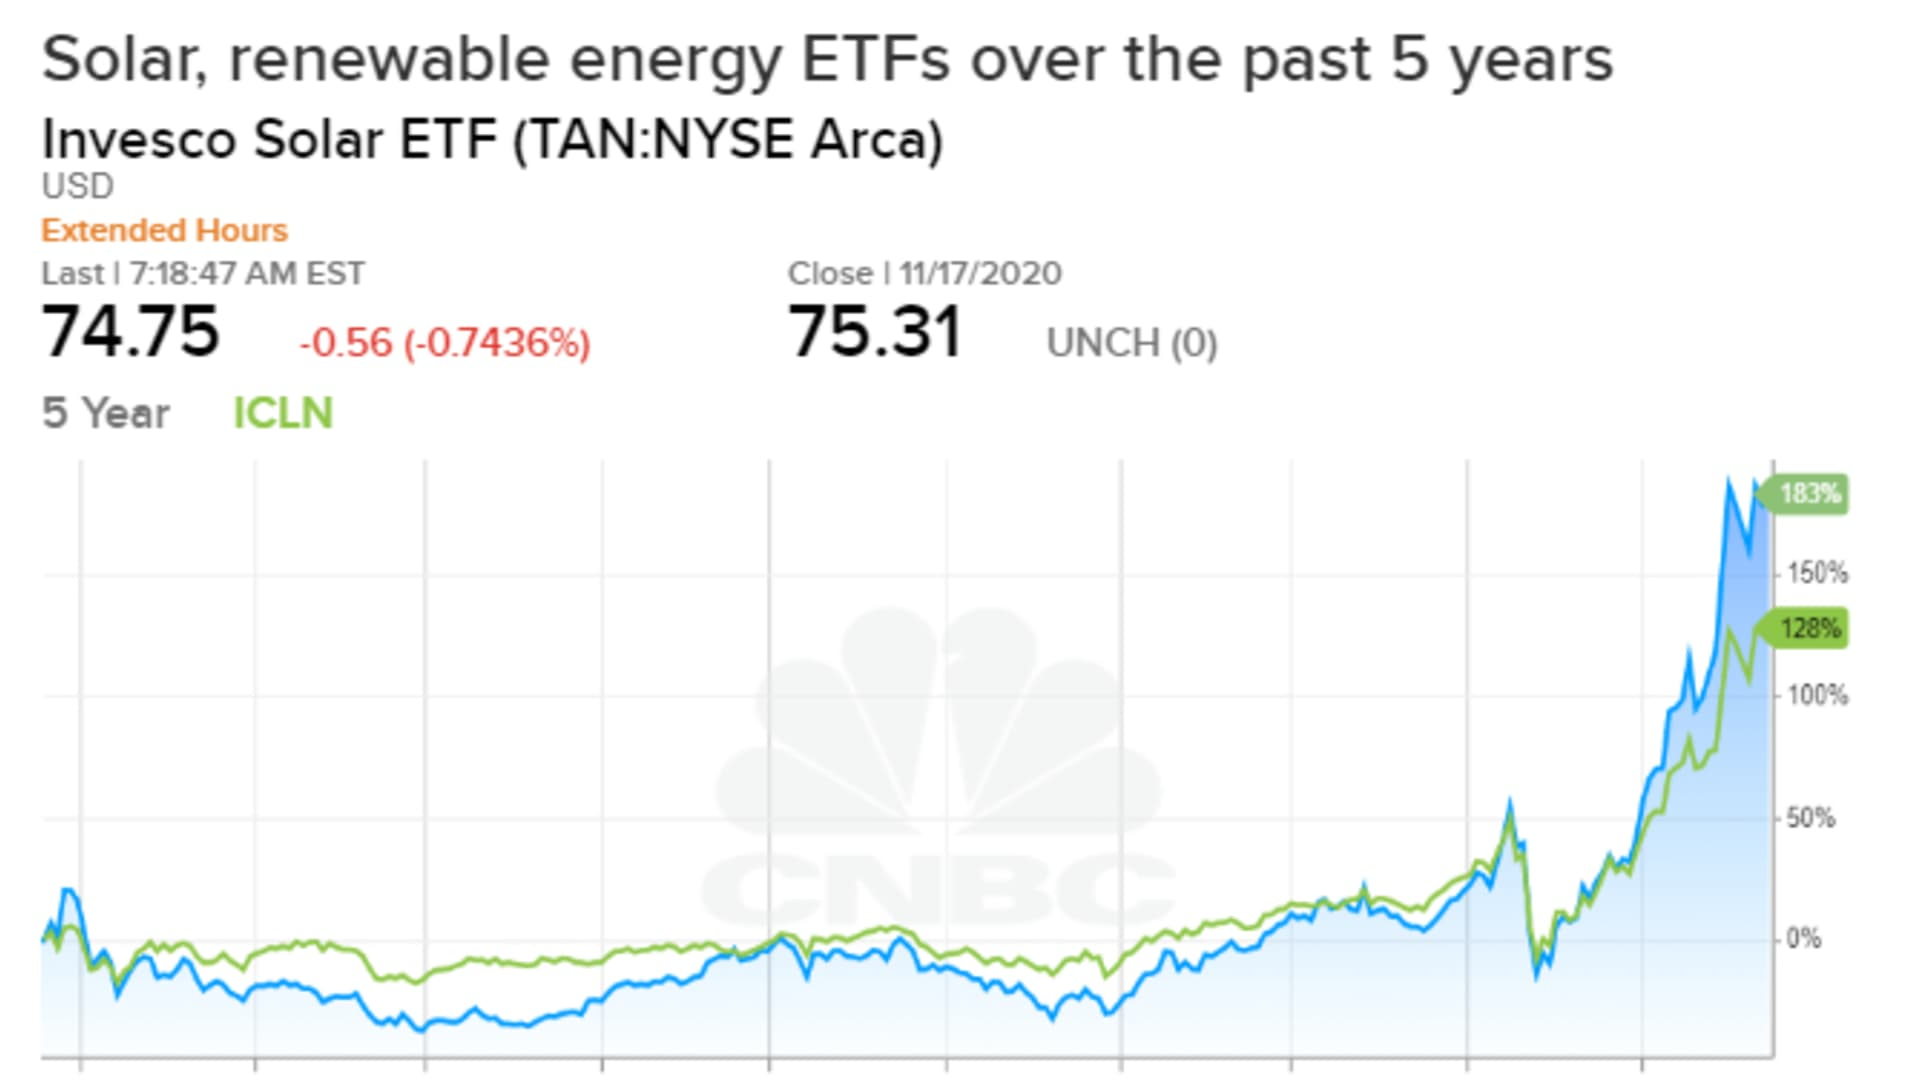 ETFs such as the Invesco Solar ETF (TAN) and iShares Global Clean Energy ETF (ICLN) show a dramatic rise in the value of climate investing in 2020.